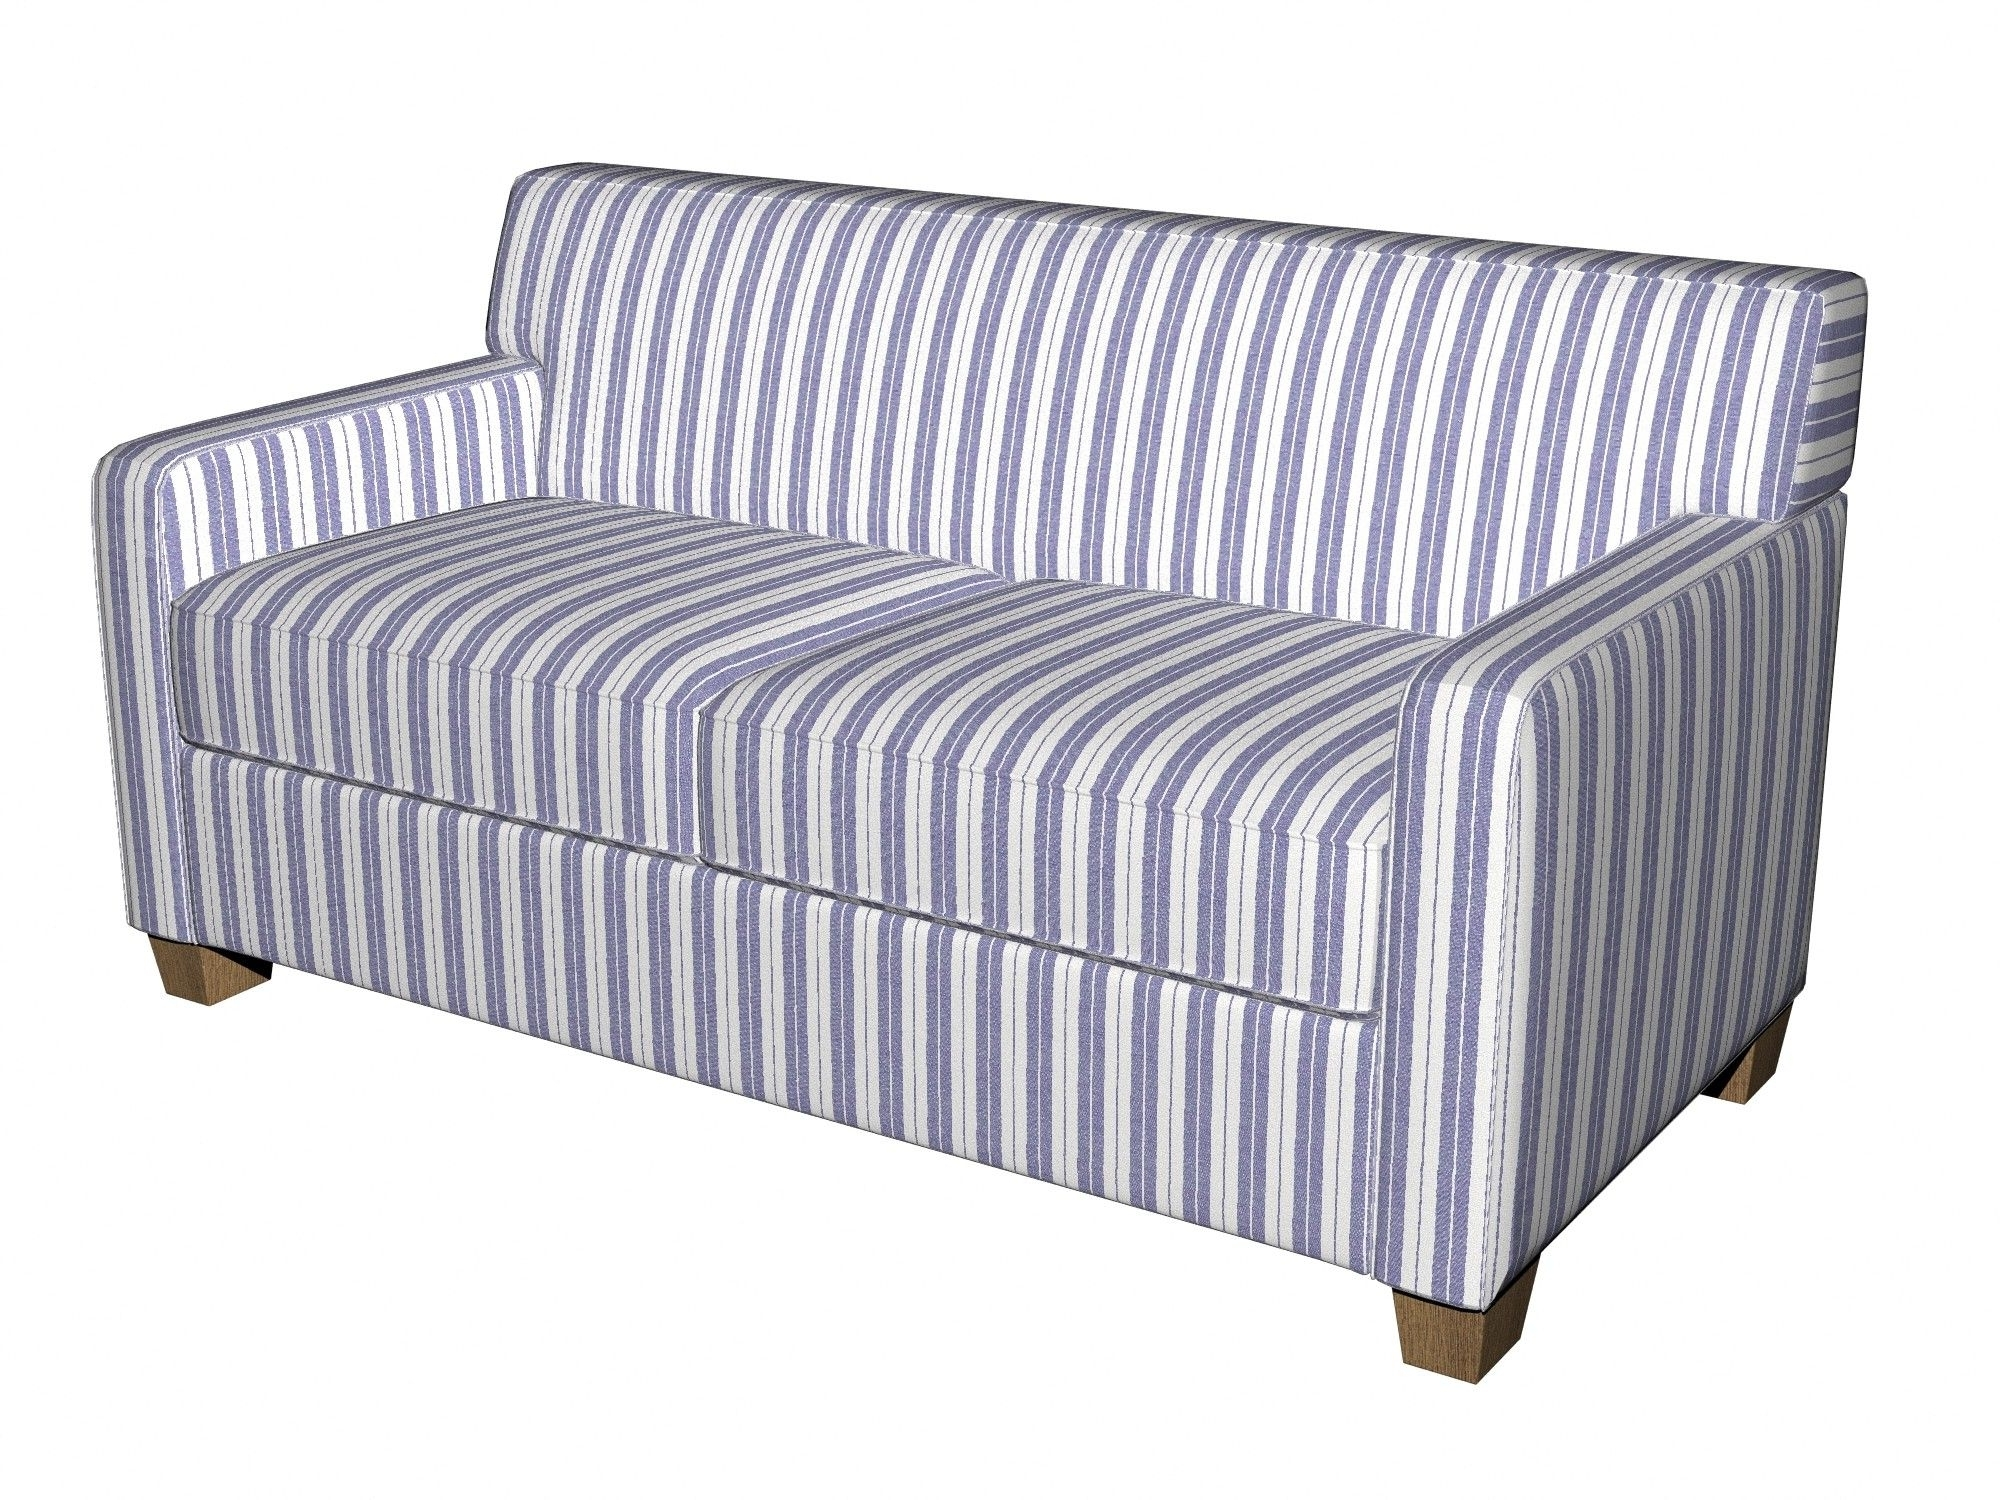 2018 Denim Blue And White Ticking Stripes Heavy Duty Upholstery Fabric Within Striped Sofas And Chairs (View 2 of 20)